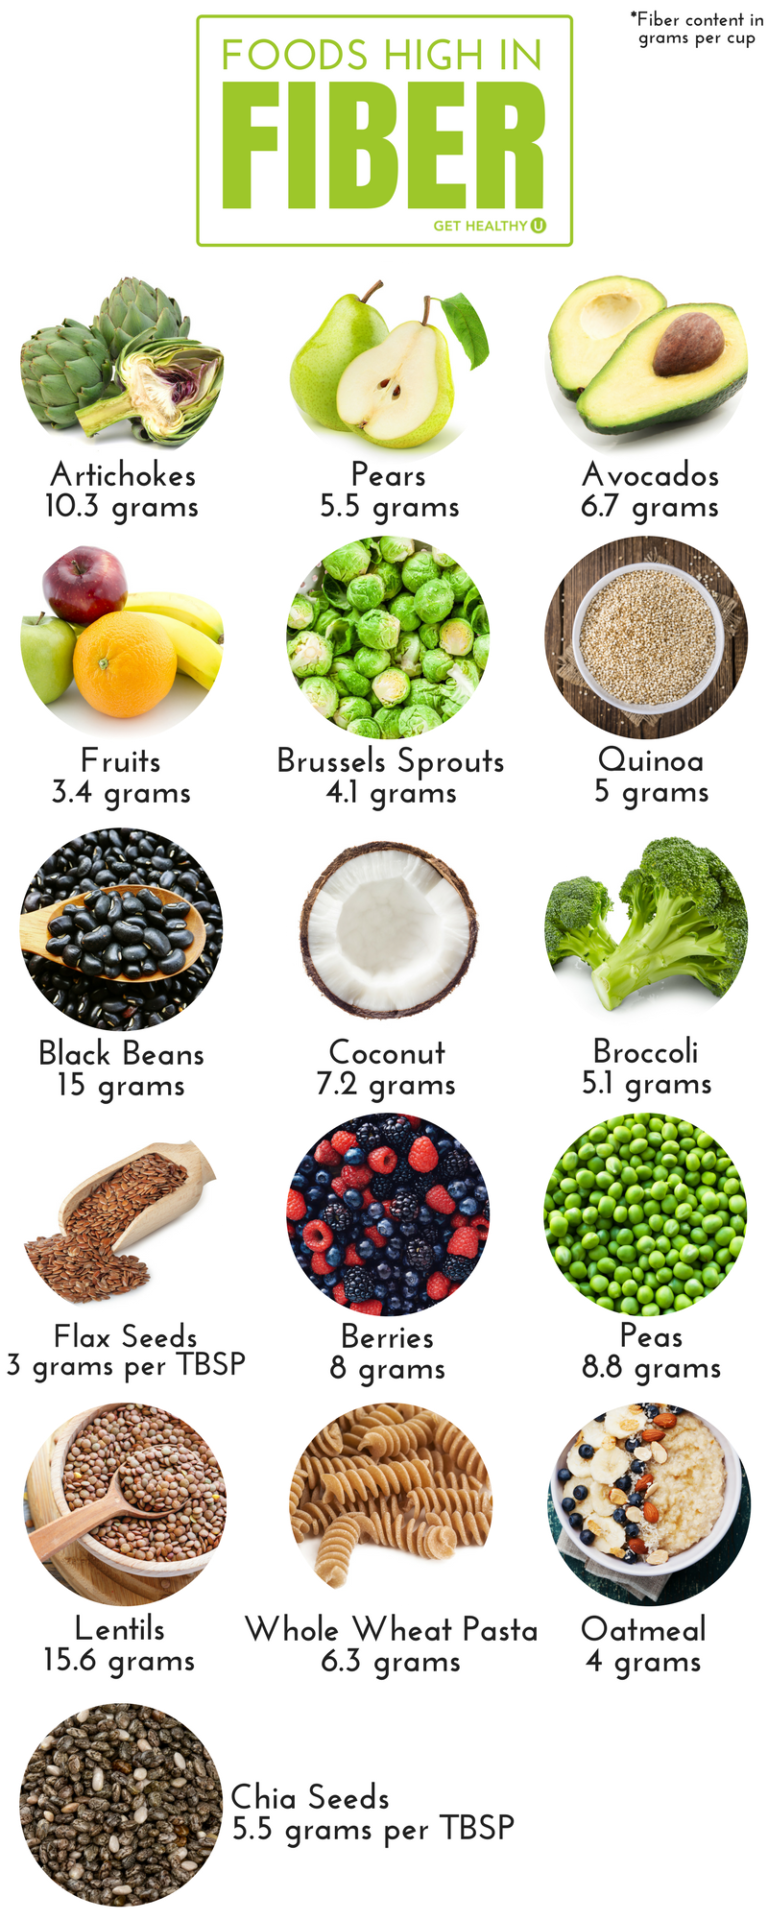 Dietary fibre: What's its role in a healthy diet?